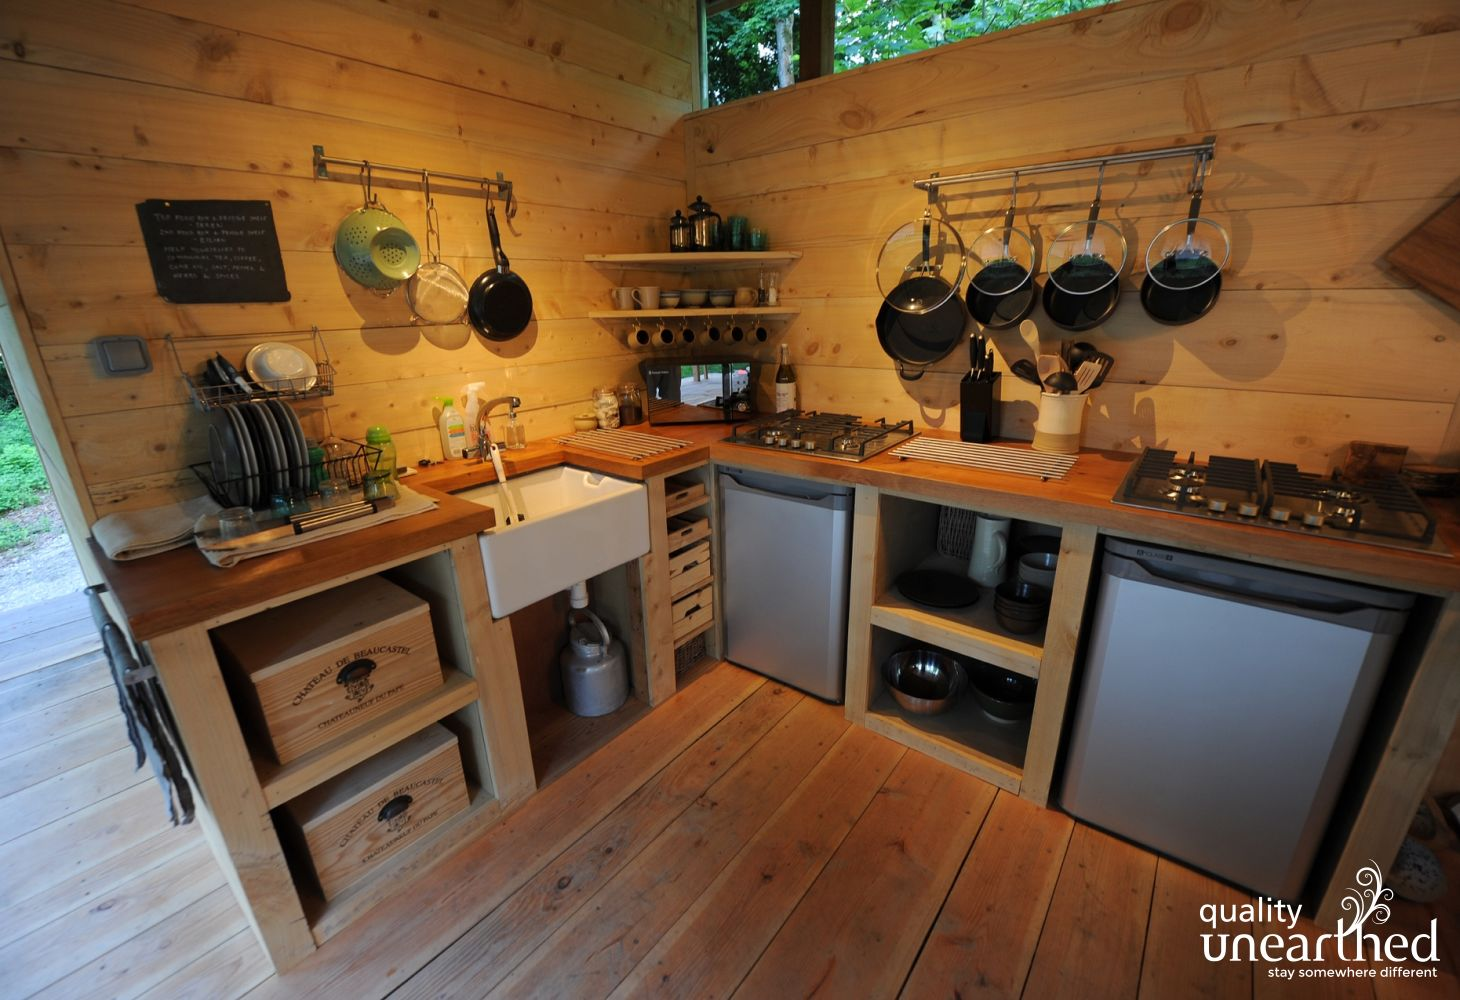 Kitchen shared with the treehouse (2 fridges, gas hob, microwave, toaster, kettle, pots, pans, kitchen implements, cutlery &crockery